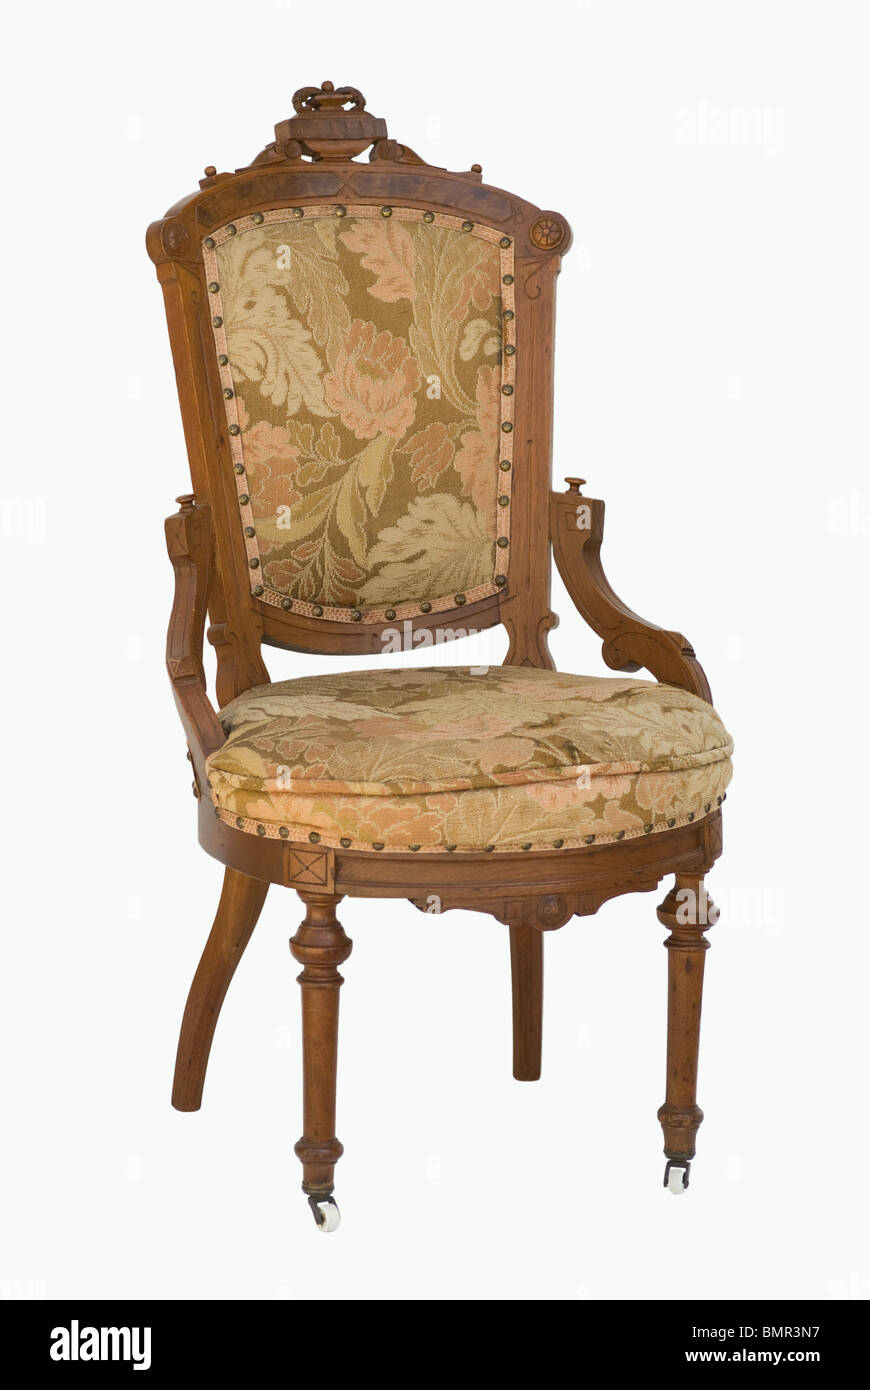 Eastlake Victorian period chair carved wood & upholstered. Front view isolated. - Stock Image